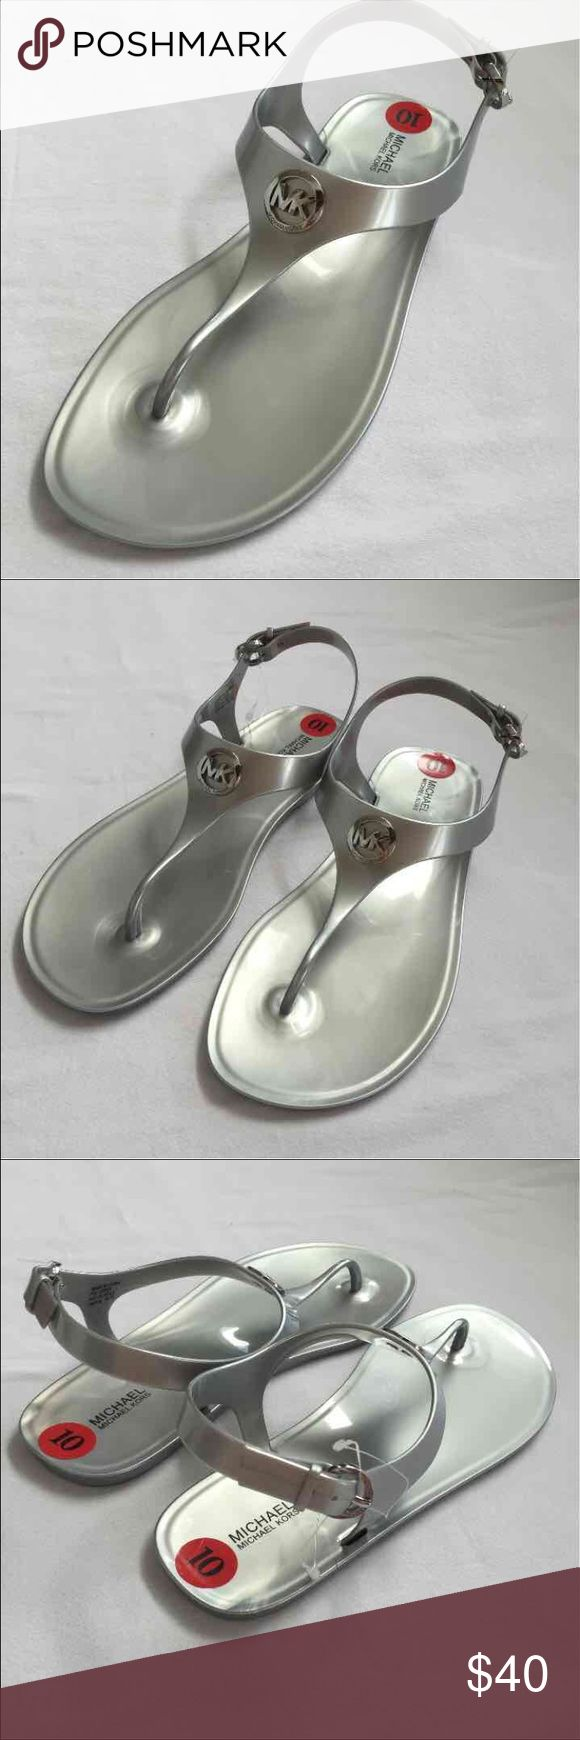 Women's jelly sandals size 10 - Michael Kors Gray Silver Flat Sandals Size 10 Tong New Without Tags Michael Kors Brand Flat